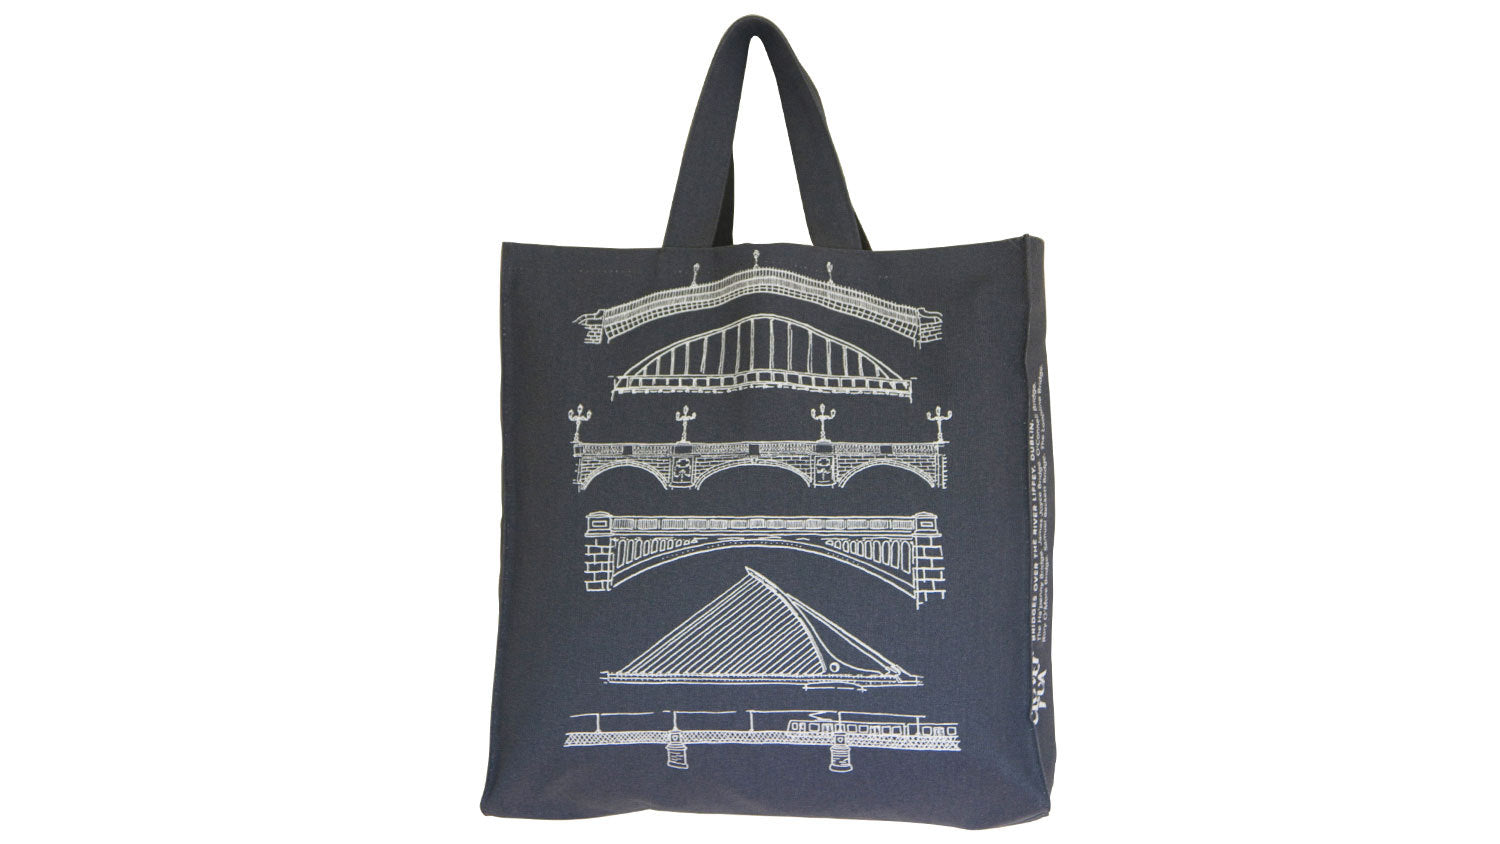 Dublin Bridges tote bag, white print on charcoal.